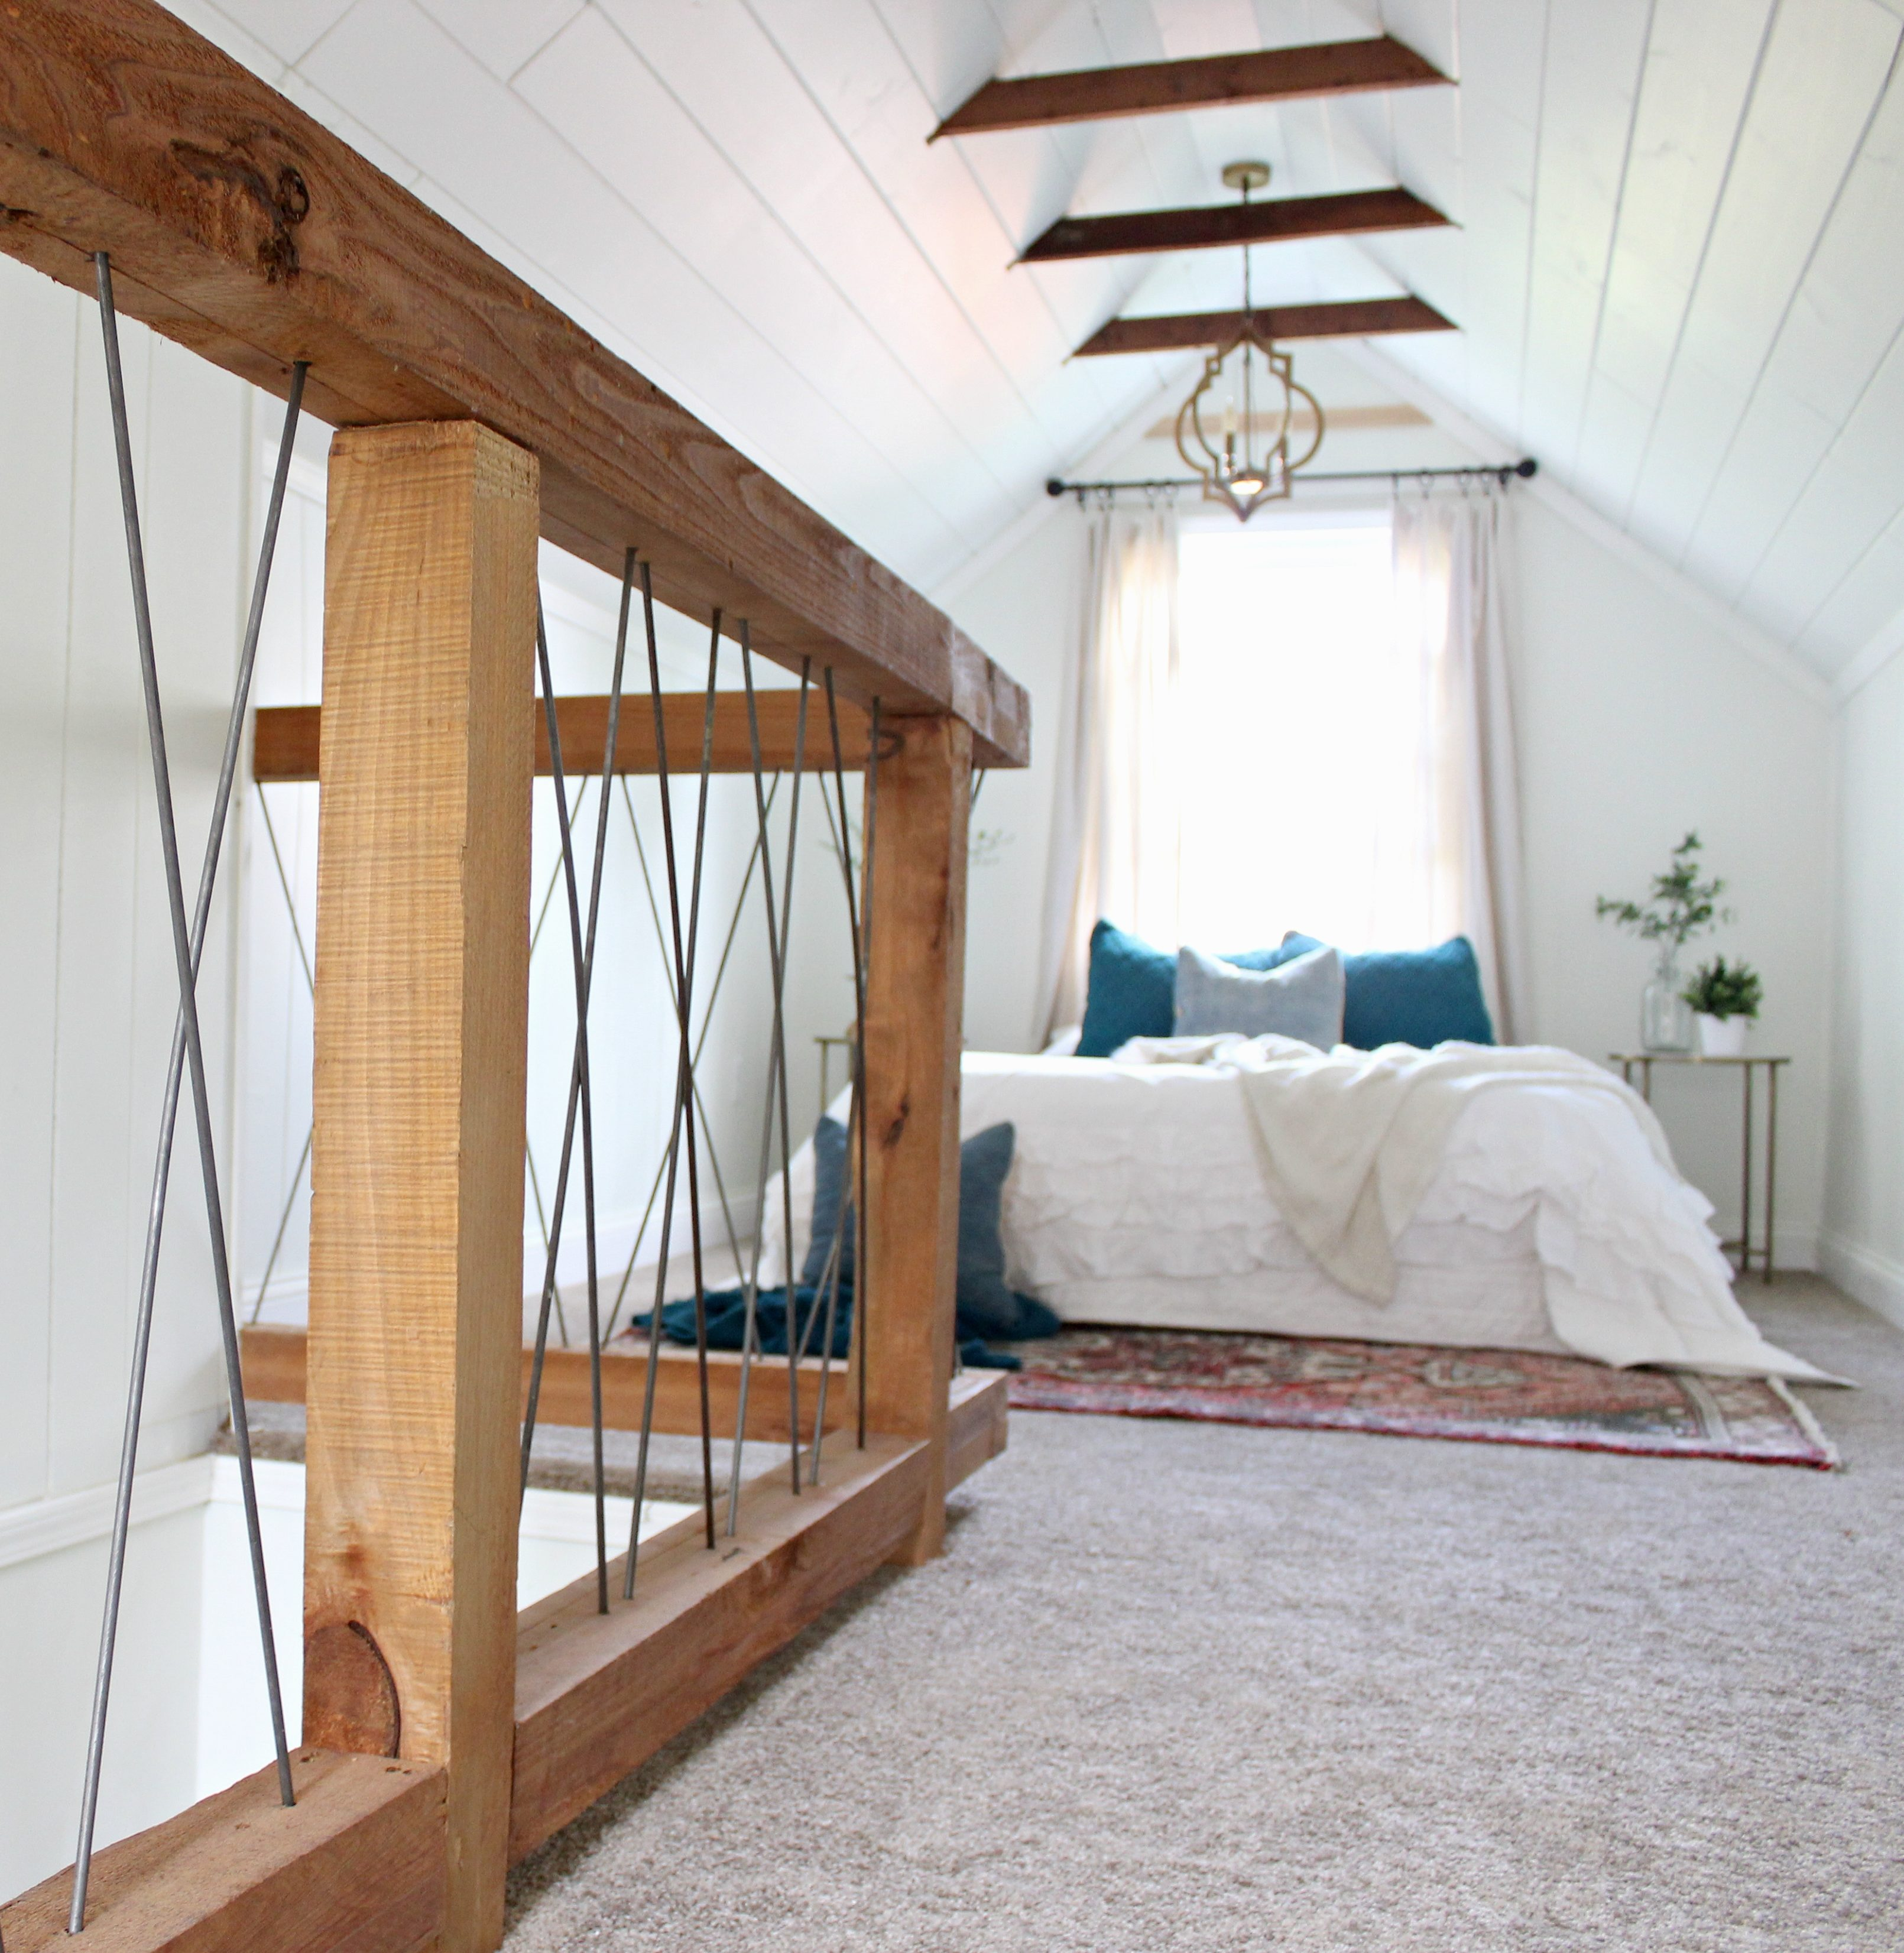 Chesterfield Cottage Reveal: Part 2 Attic Bedroom & Chesterfield Cottage Reveal: Part 2 Attic Bedroom | Beginning in ...